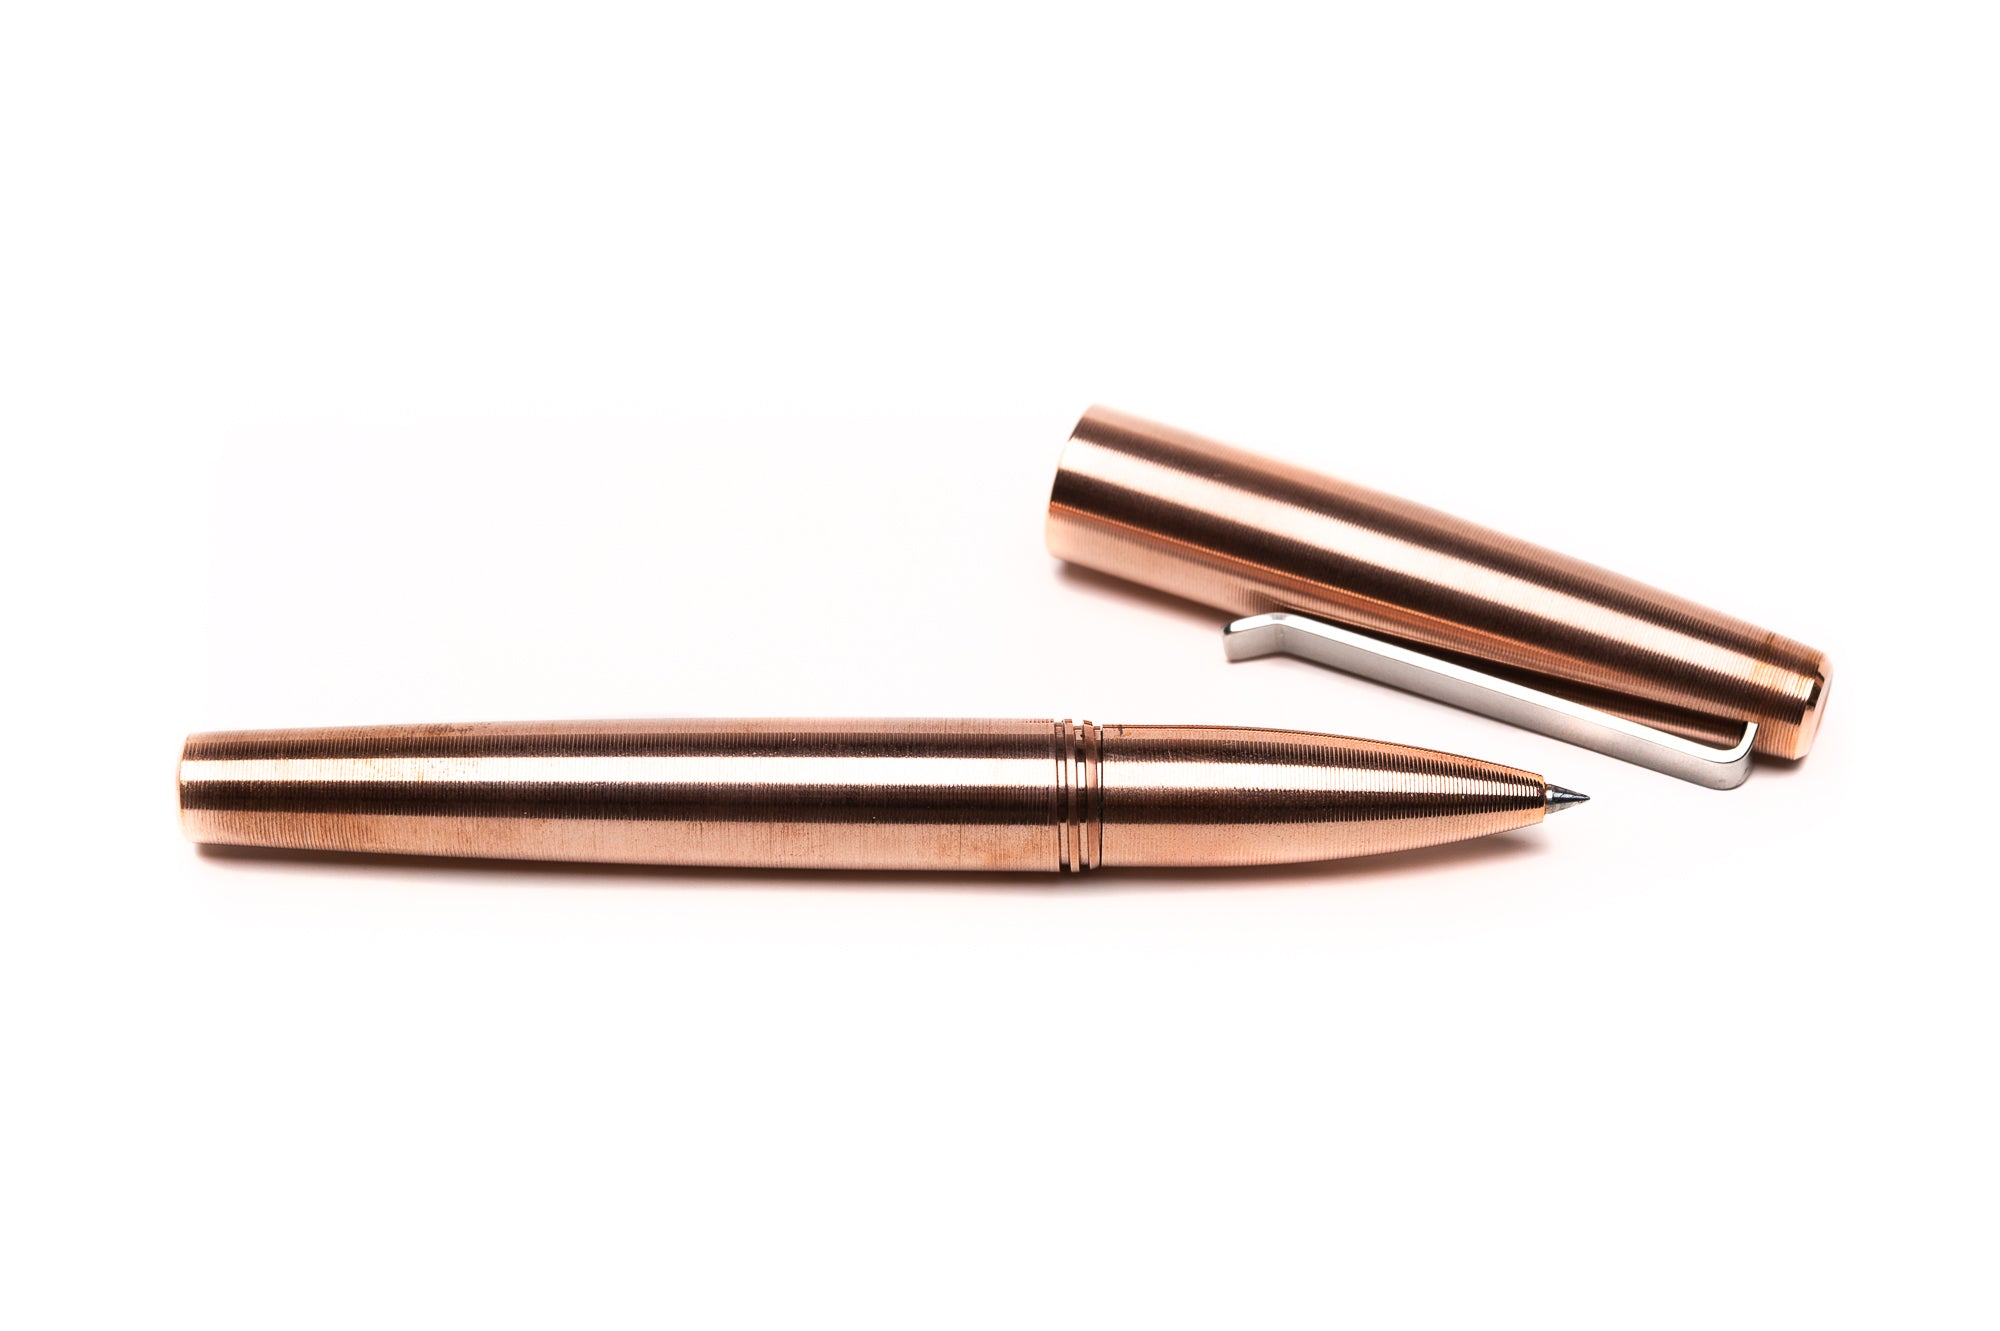 Copper Rollerball Pen by Tactile Turn